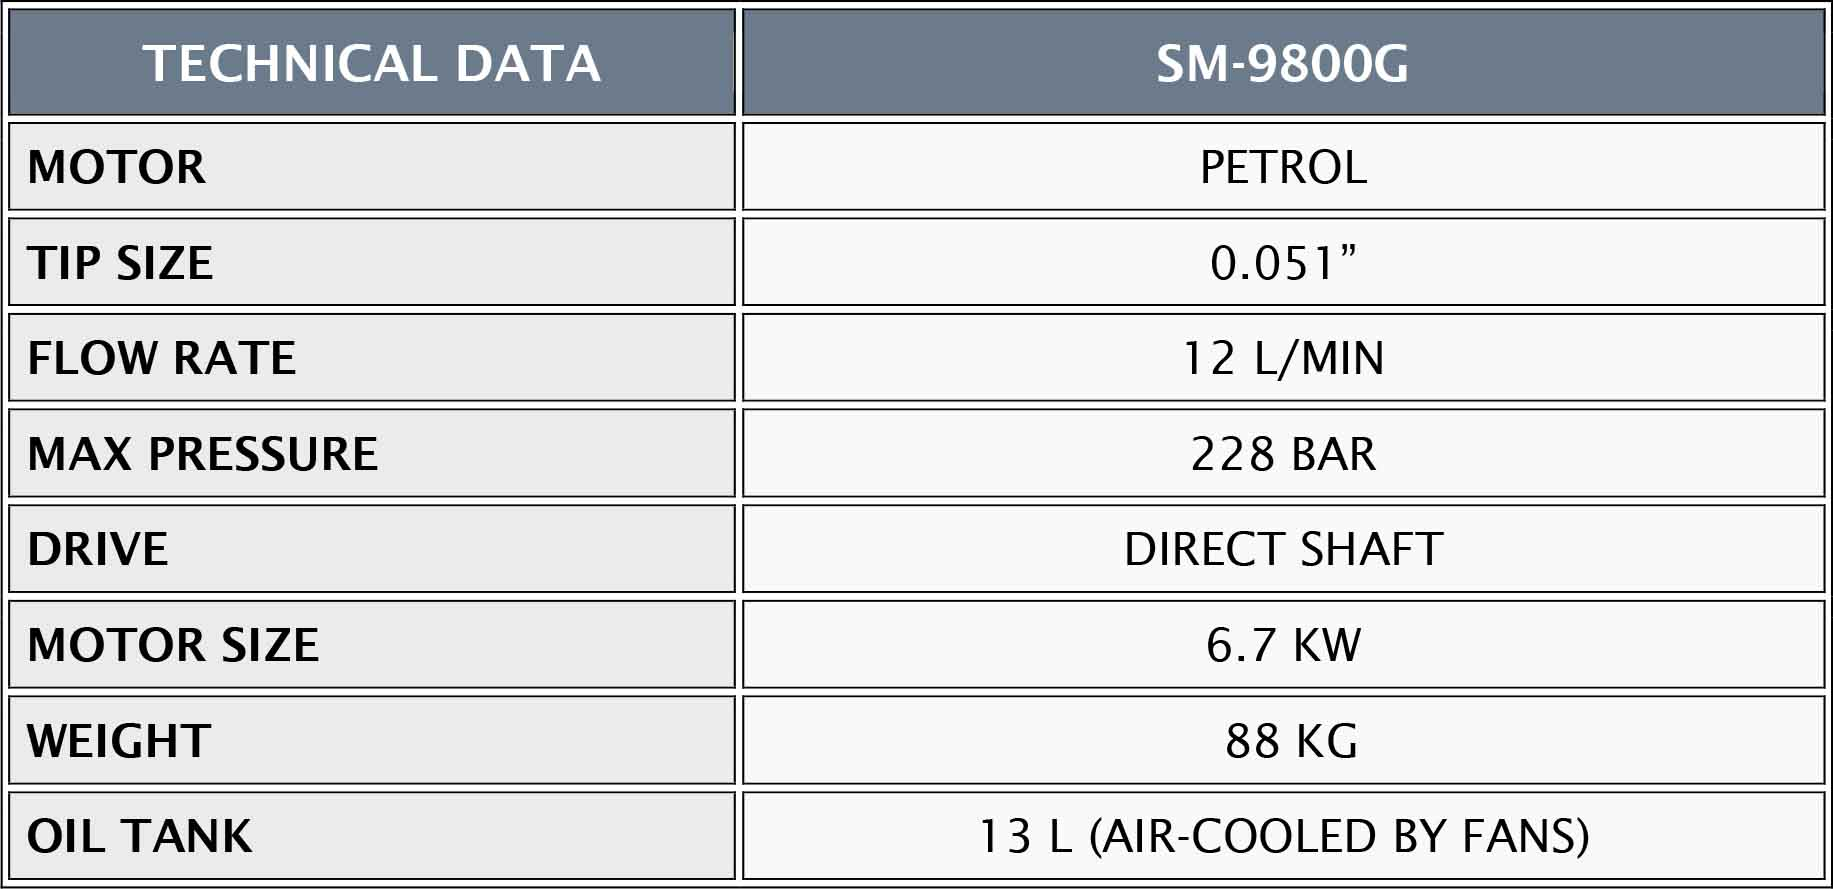 SM9800G TECHNICAL DATA TABLE UPDATE